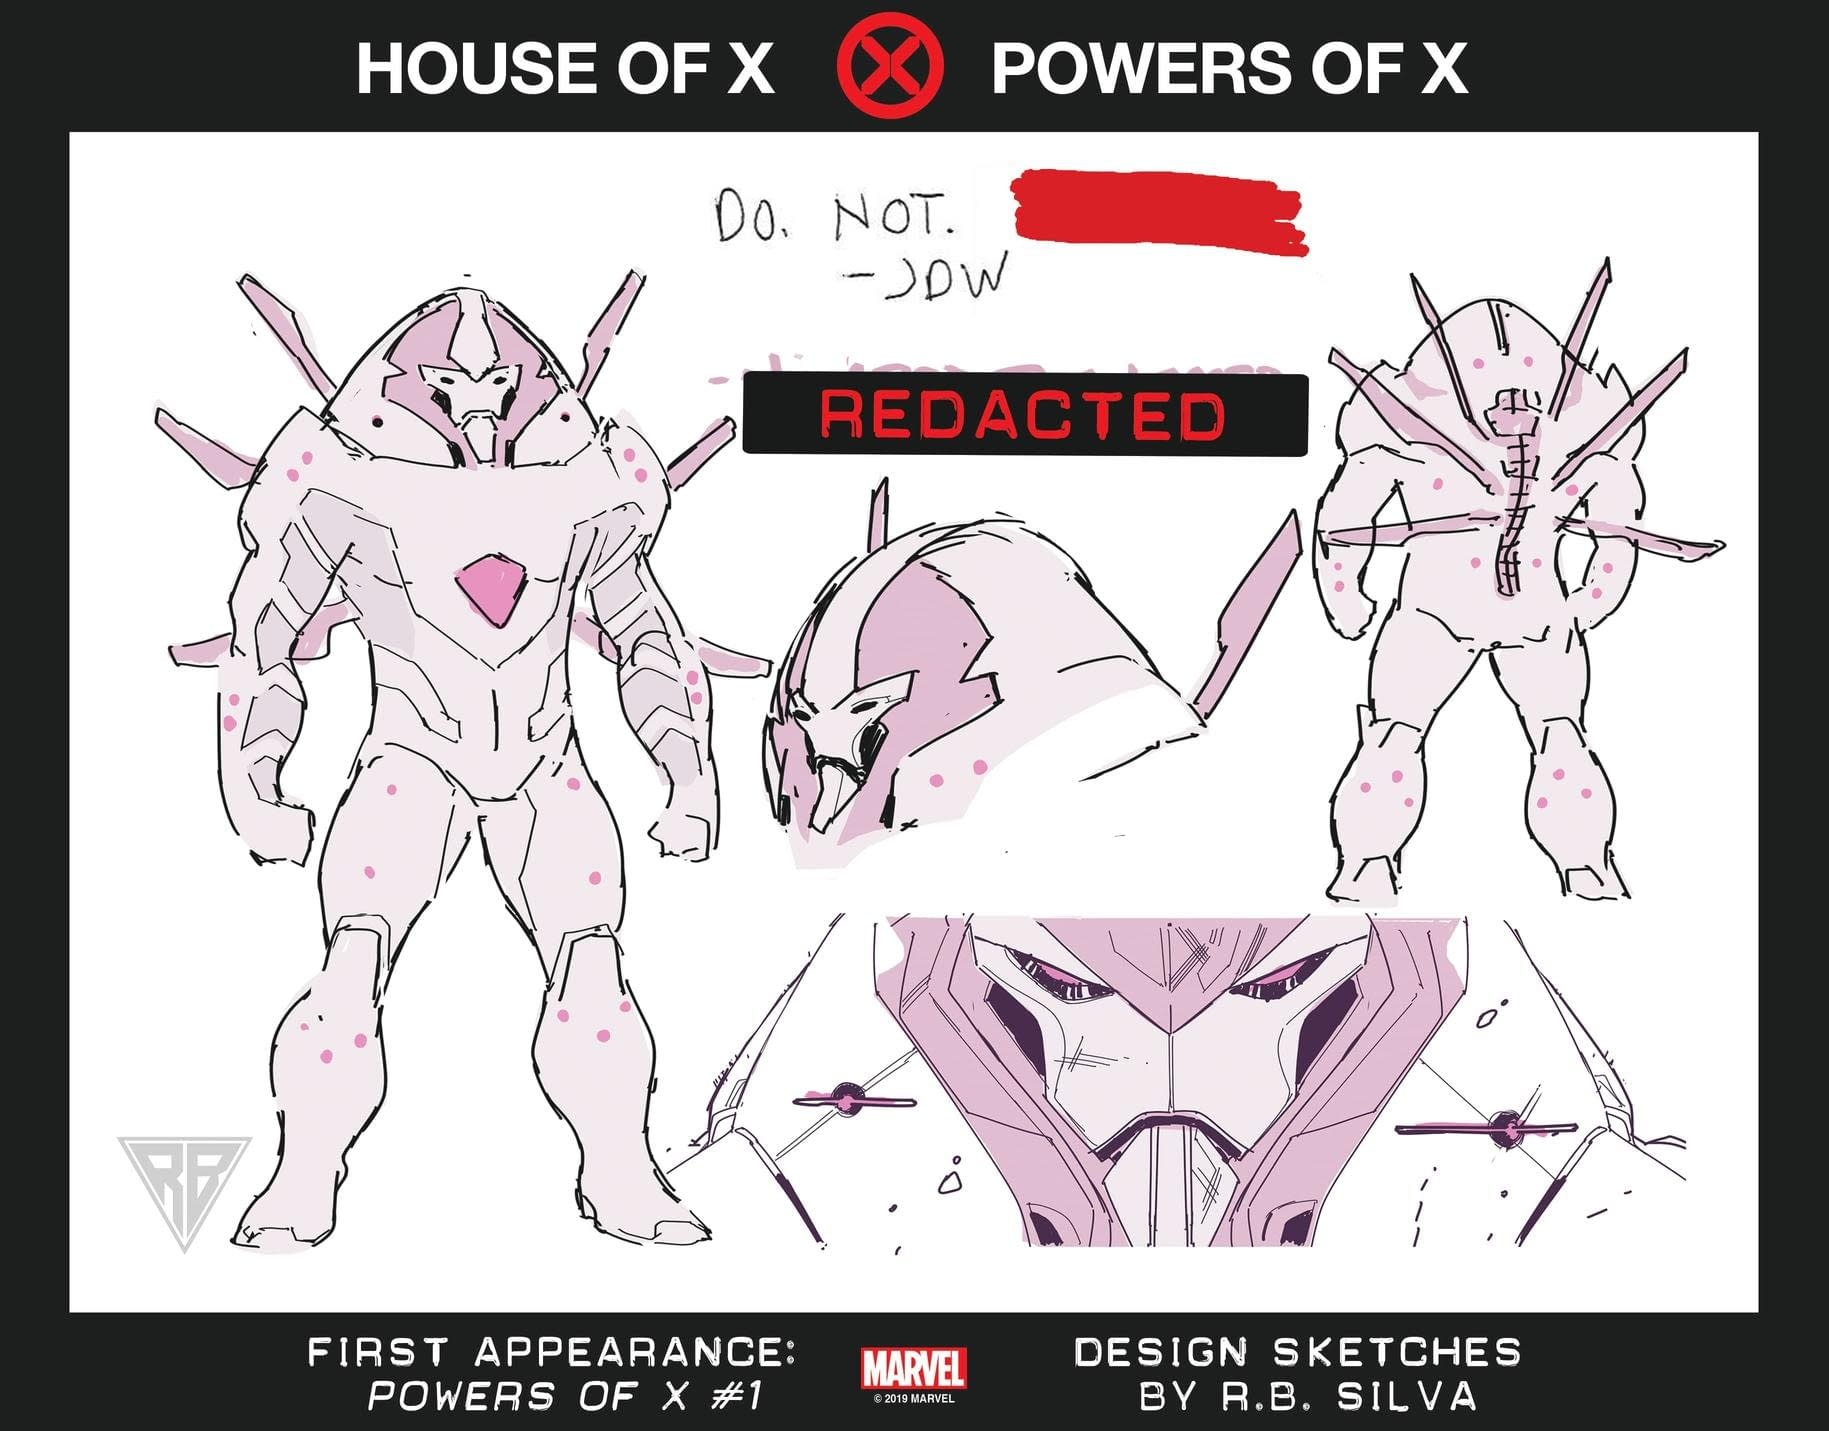 Marvel Reveals Designs for 7 New Mutants for Powers of X, X-Men Relaunch